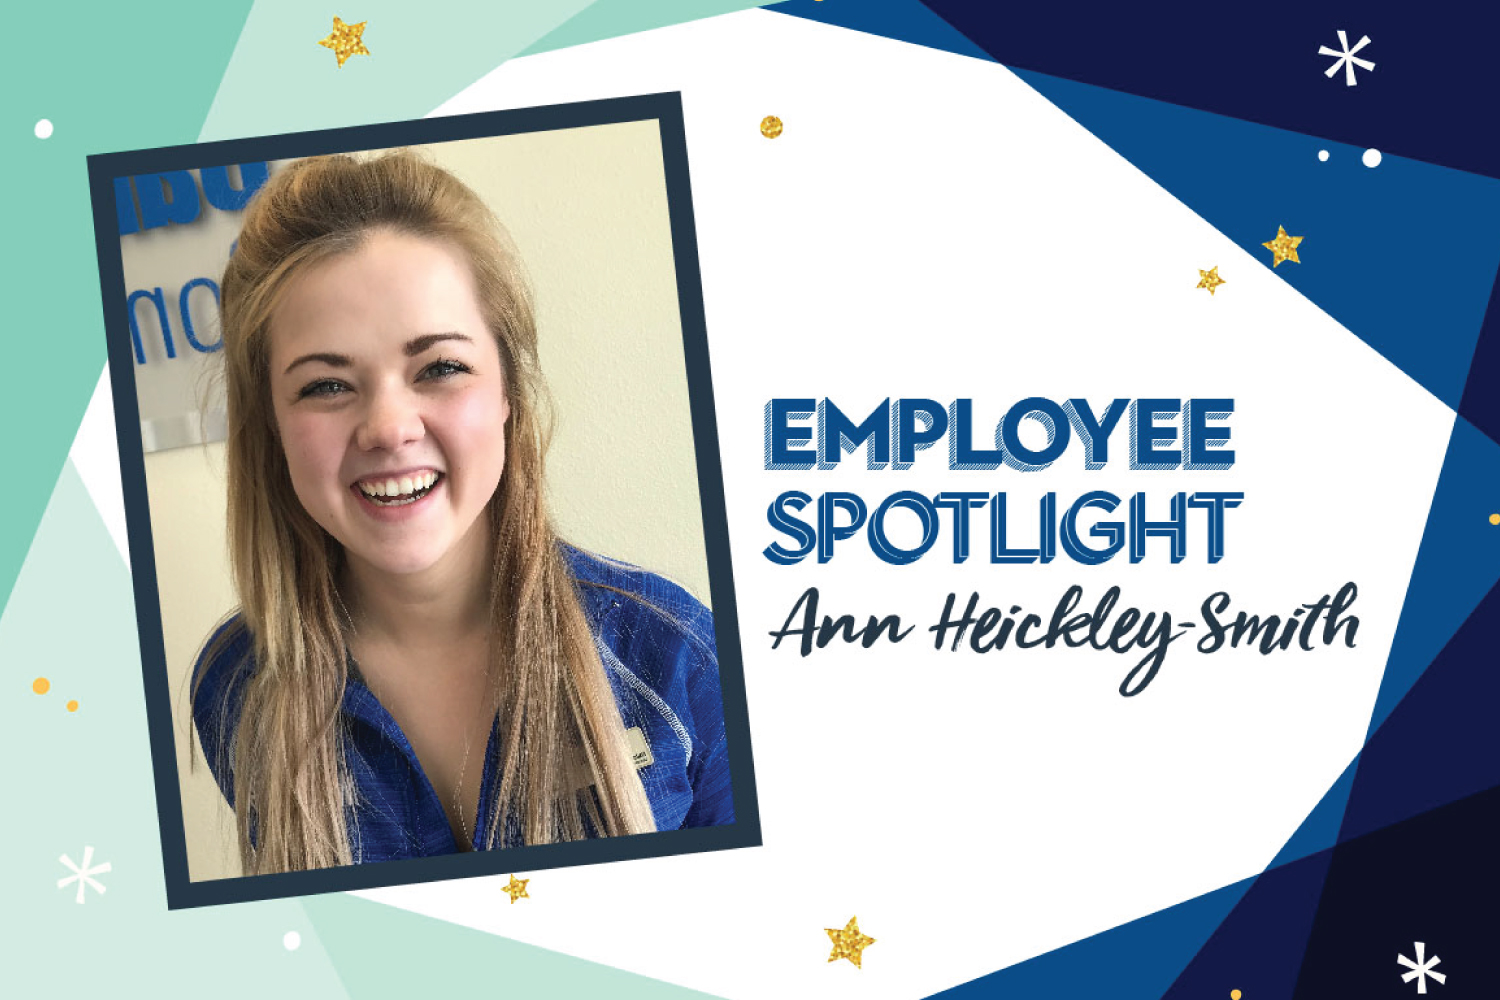 Employee Spotlight: Ann Heickley-Smith